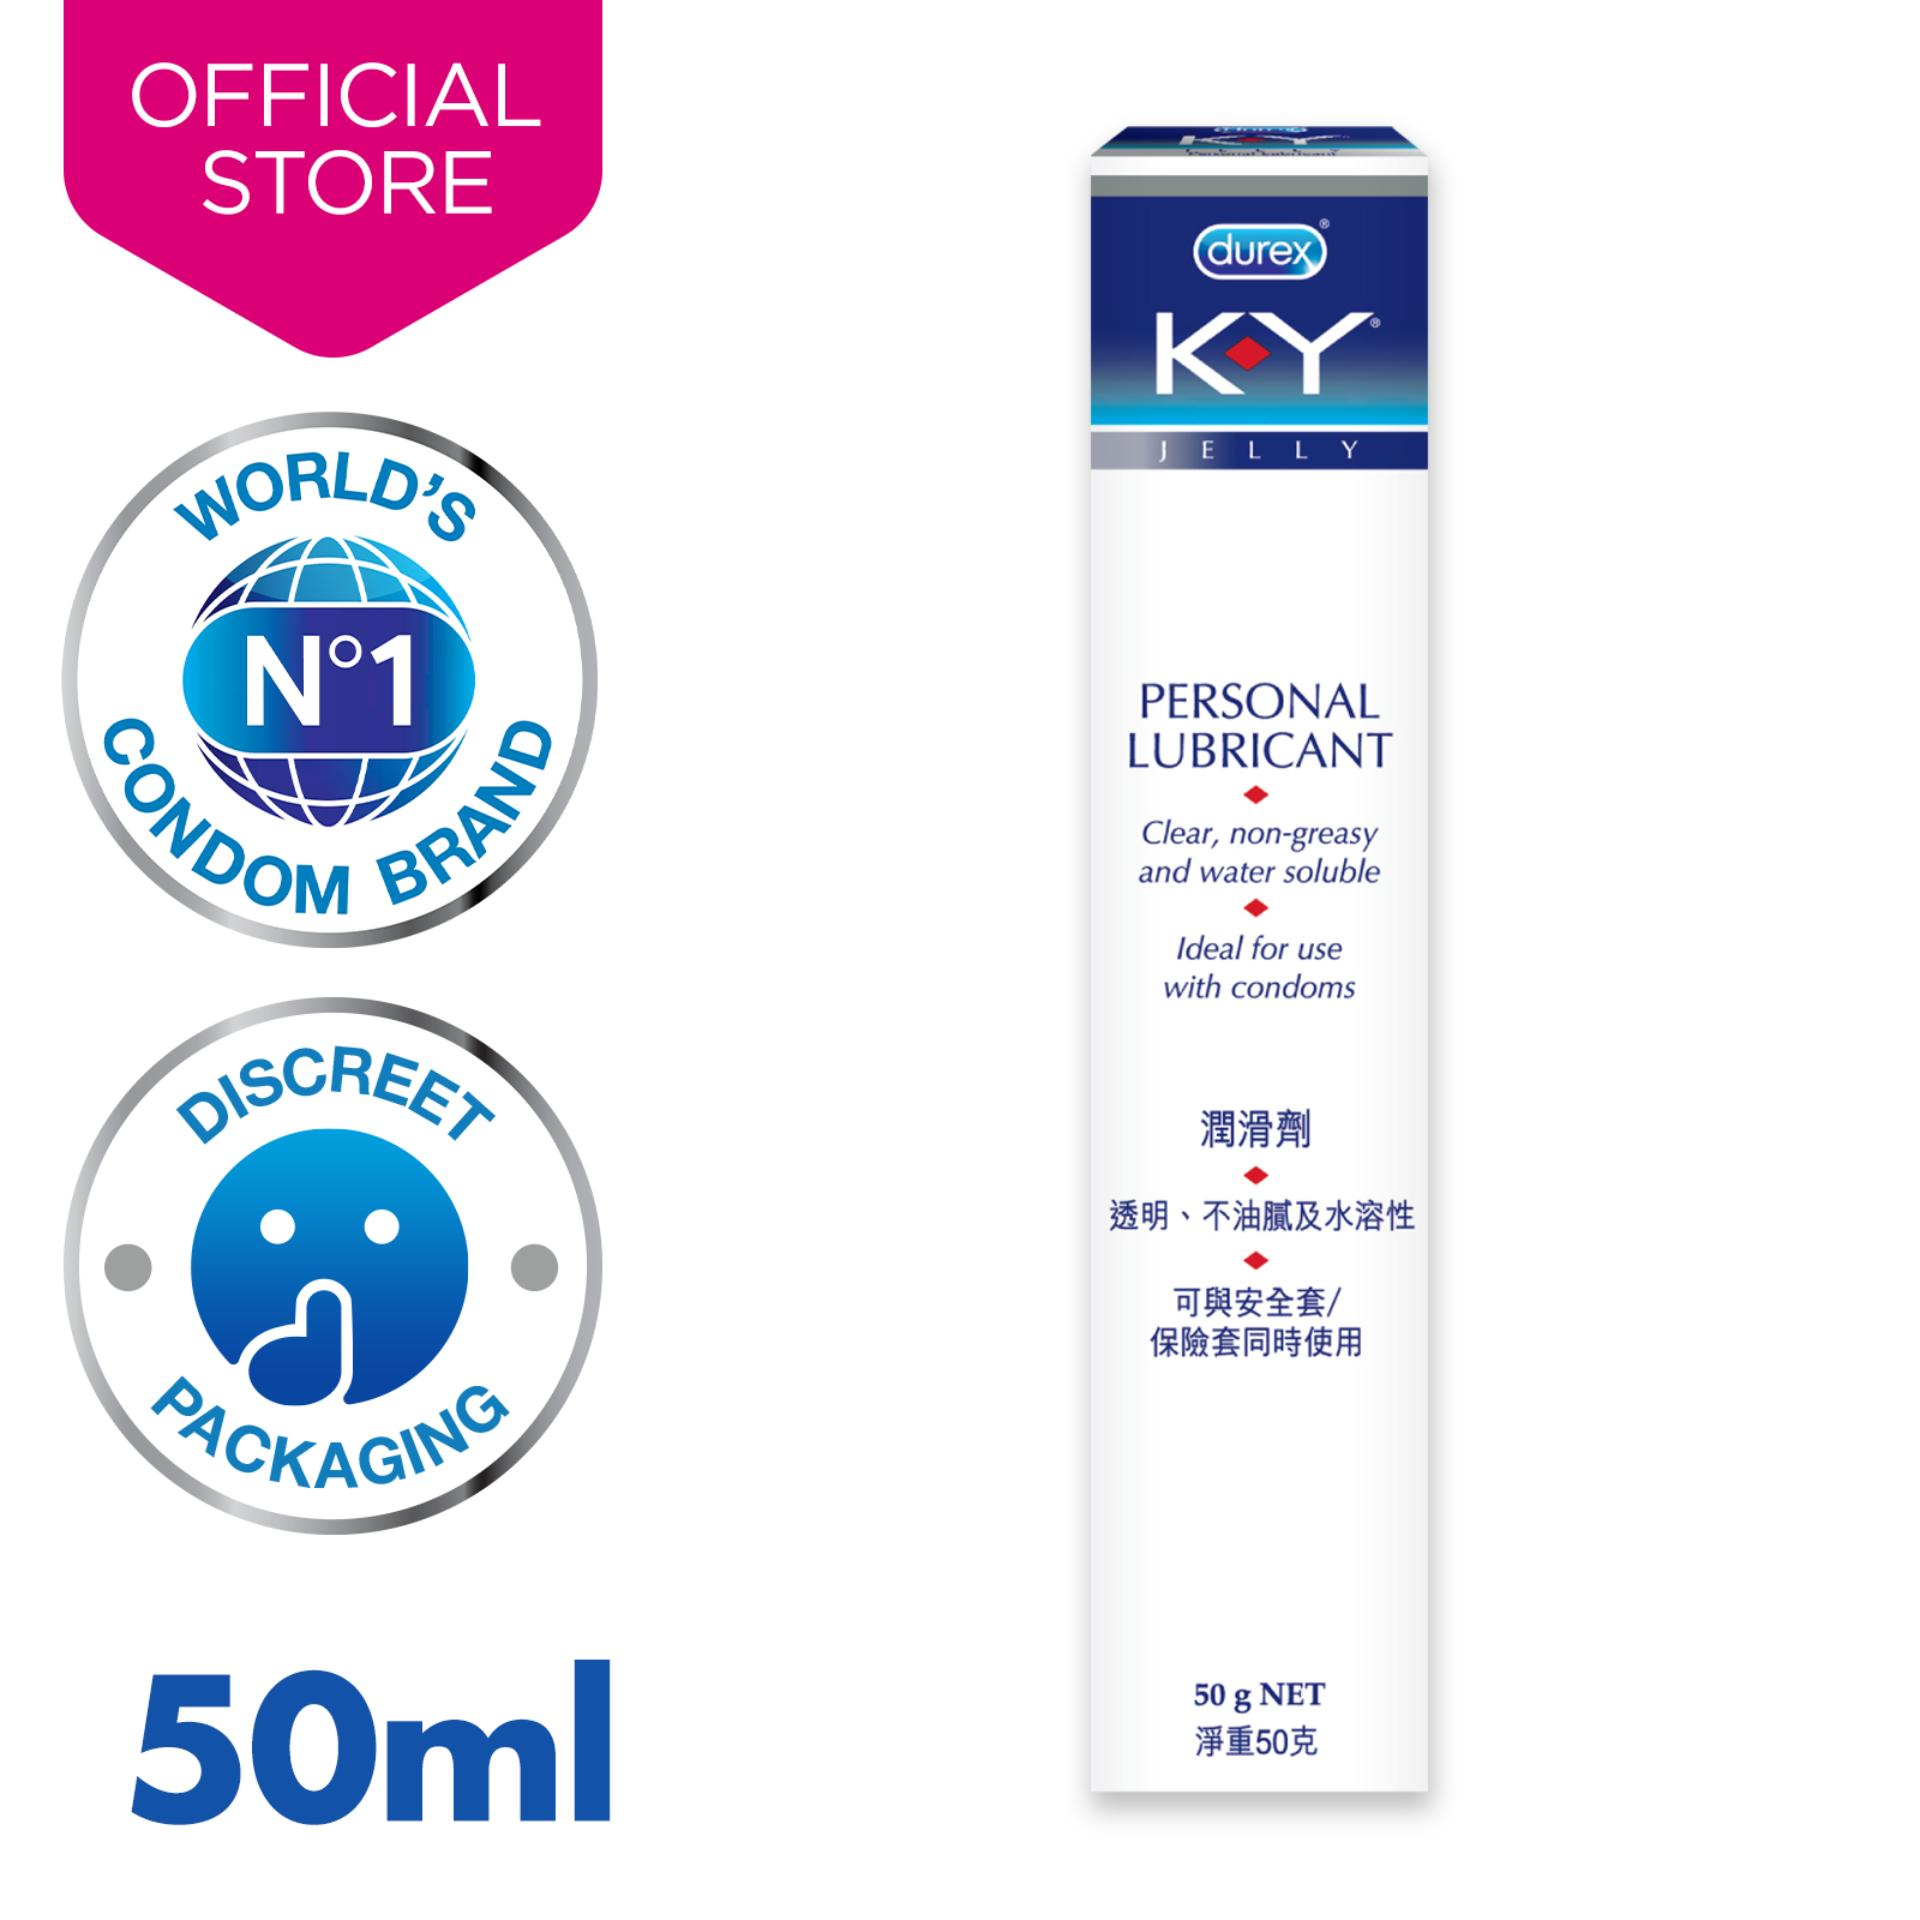 Durex K-Y Jelly Intimate Lube 50g Lubricant By Durex.